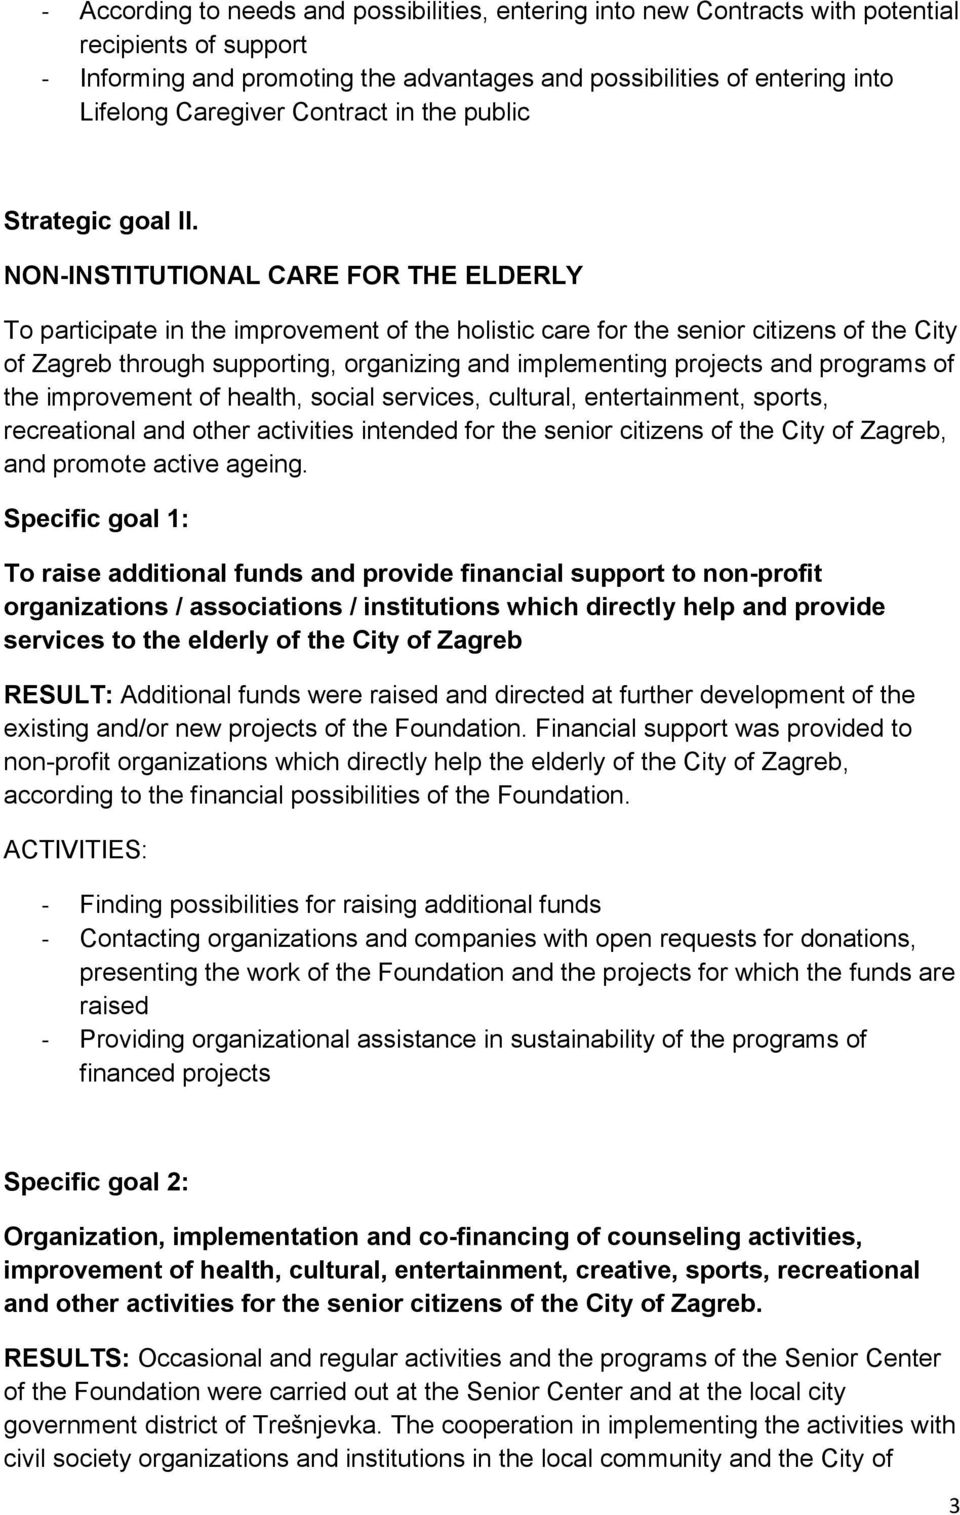 NON-INSTITUTIONAL CARE FOR THE ELDERLY To participate in the improvement of the holistic care for the senior citizens of the City of Zagreb through supporting, organizing and implementing projects